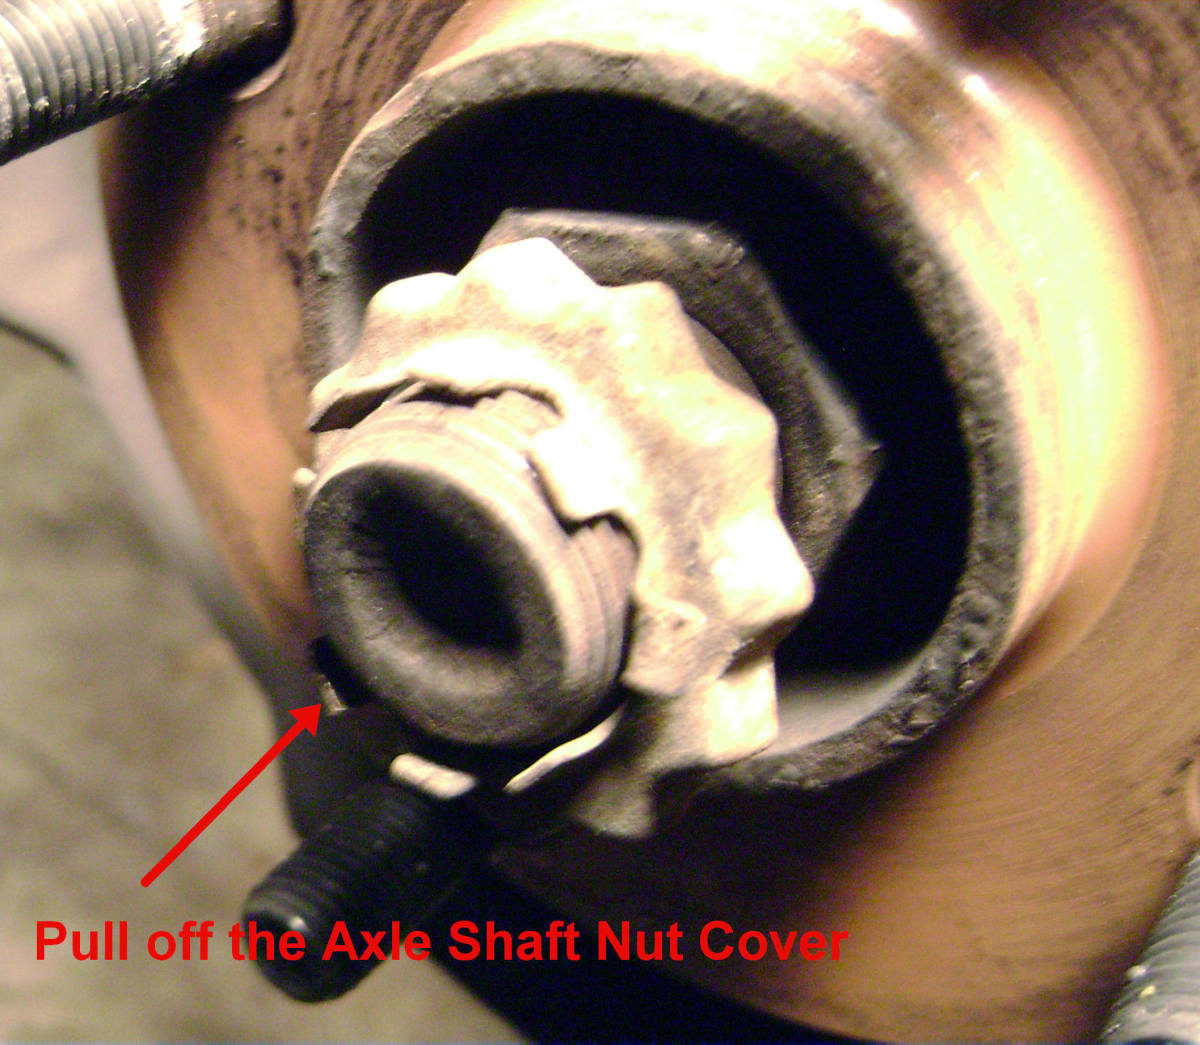 F.  Pull off axle shaft nut cover